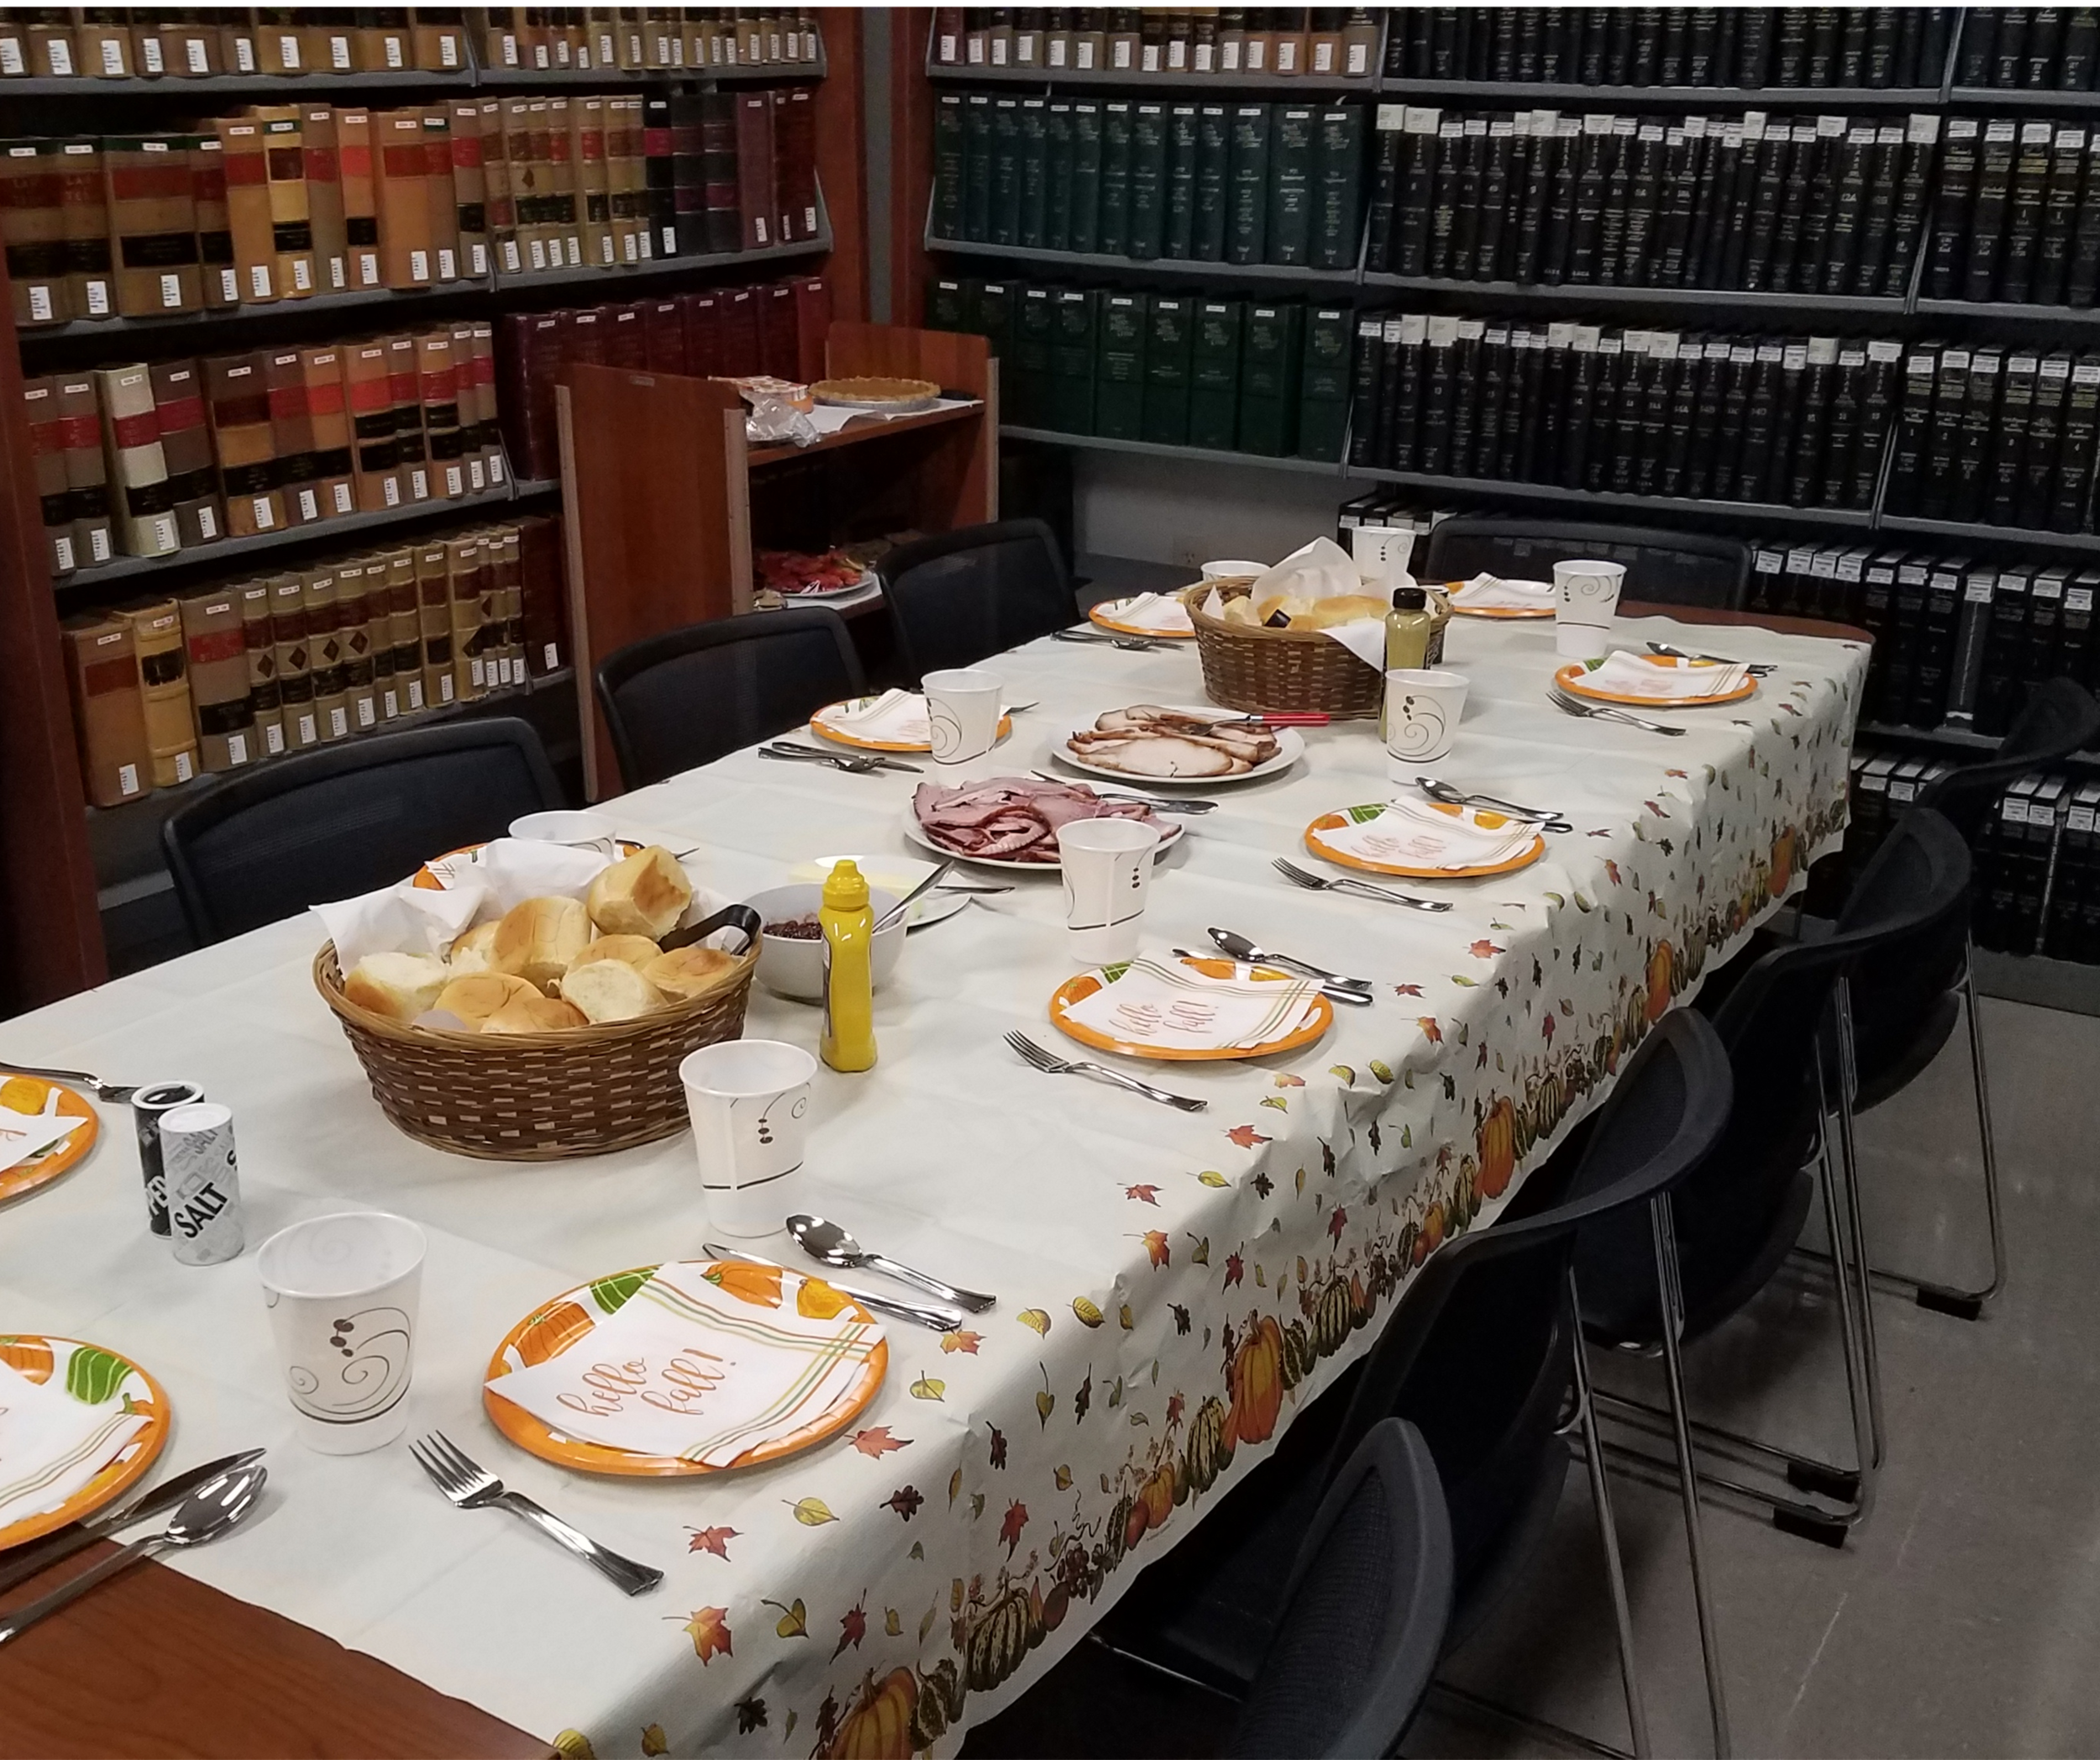 Table setting for Harris County Law Library staff Thanksgiving potluck among historical statute books.